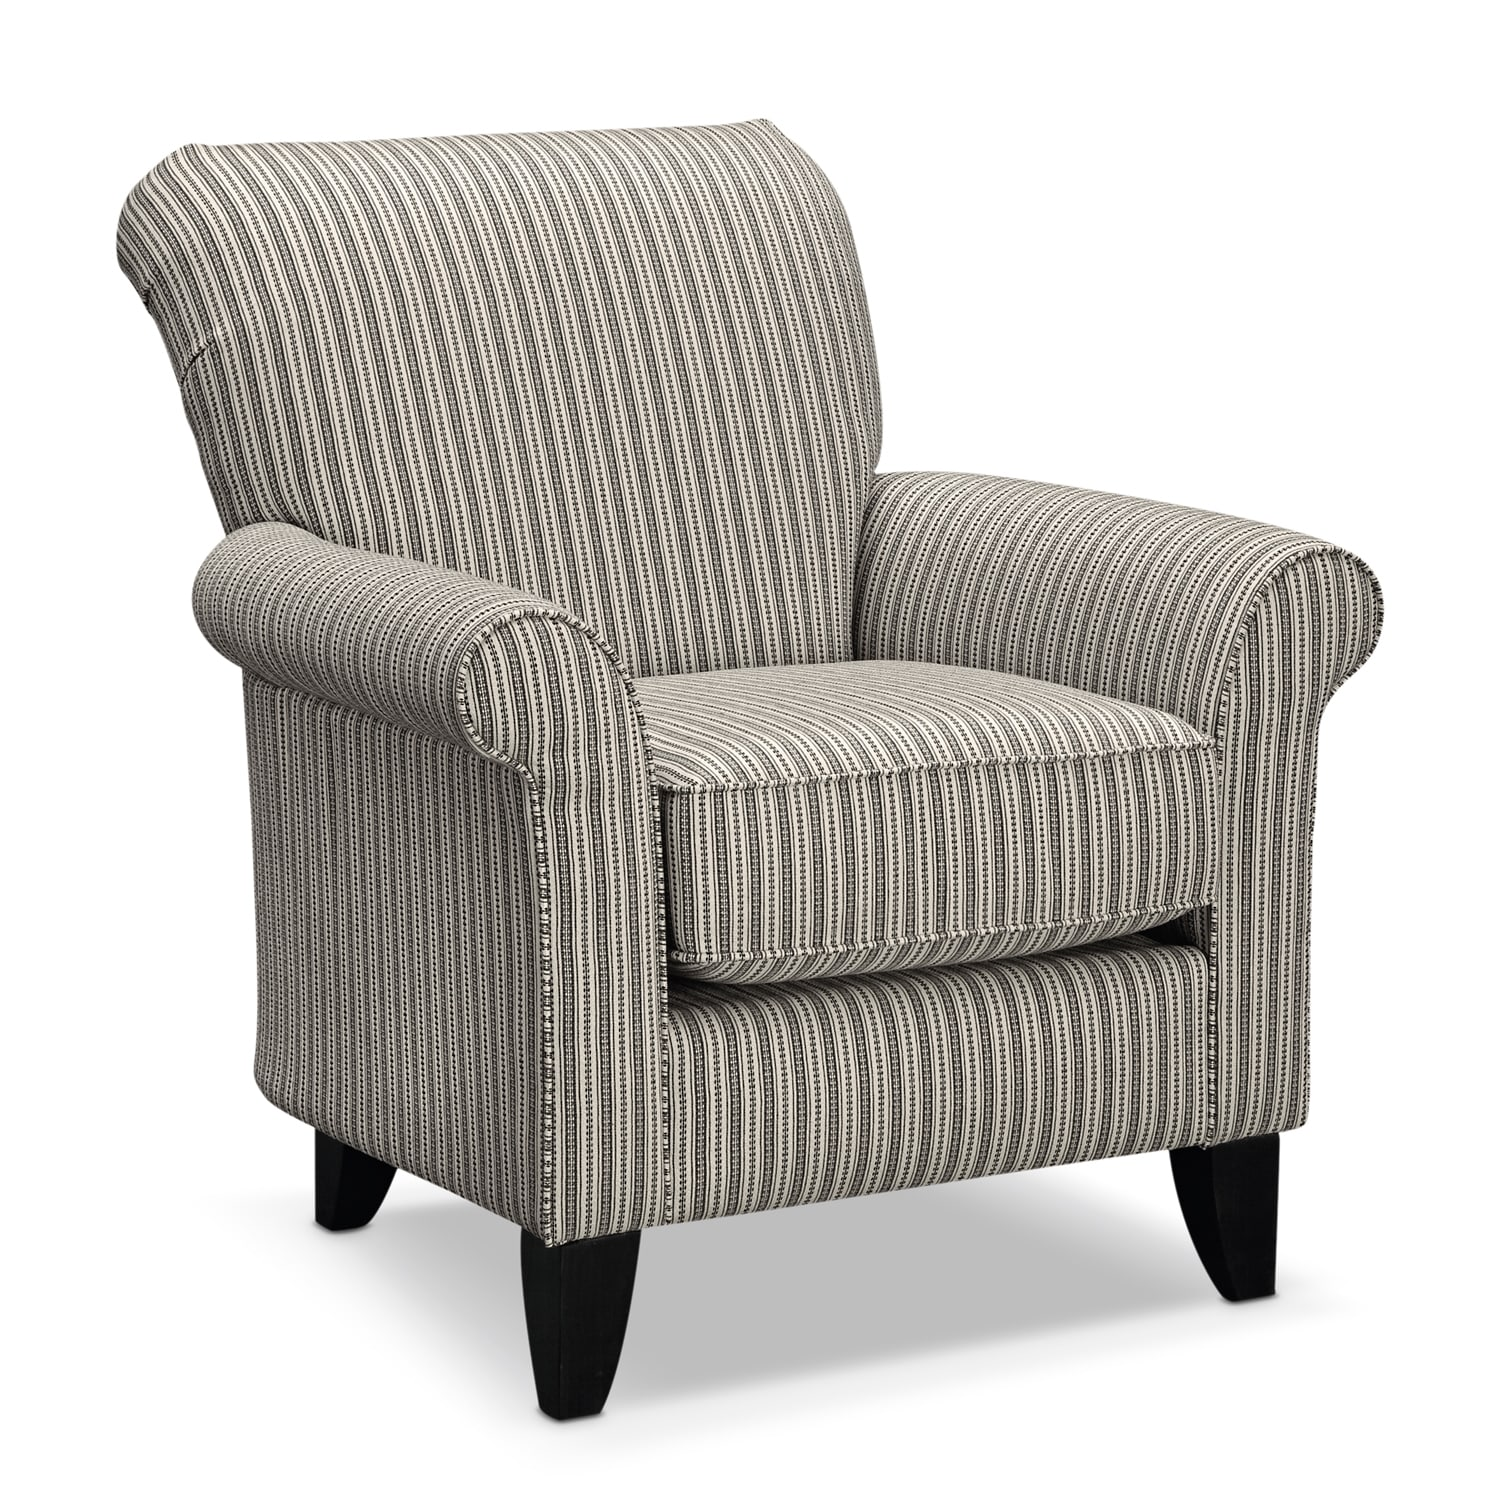 Colette accent chair gray stripe value city furniture for Living room chairs